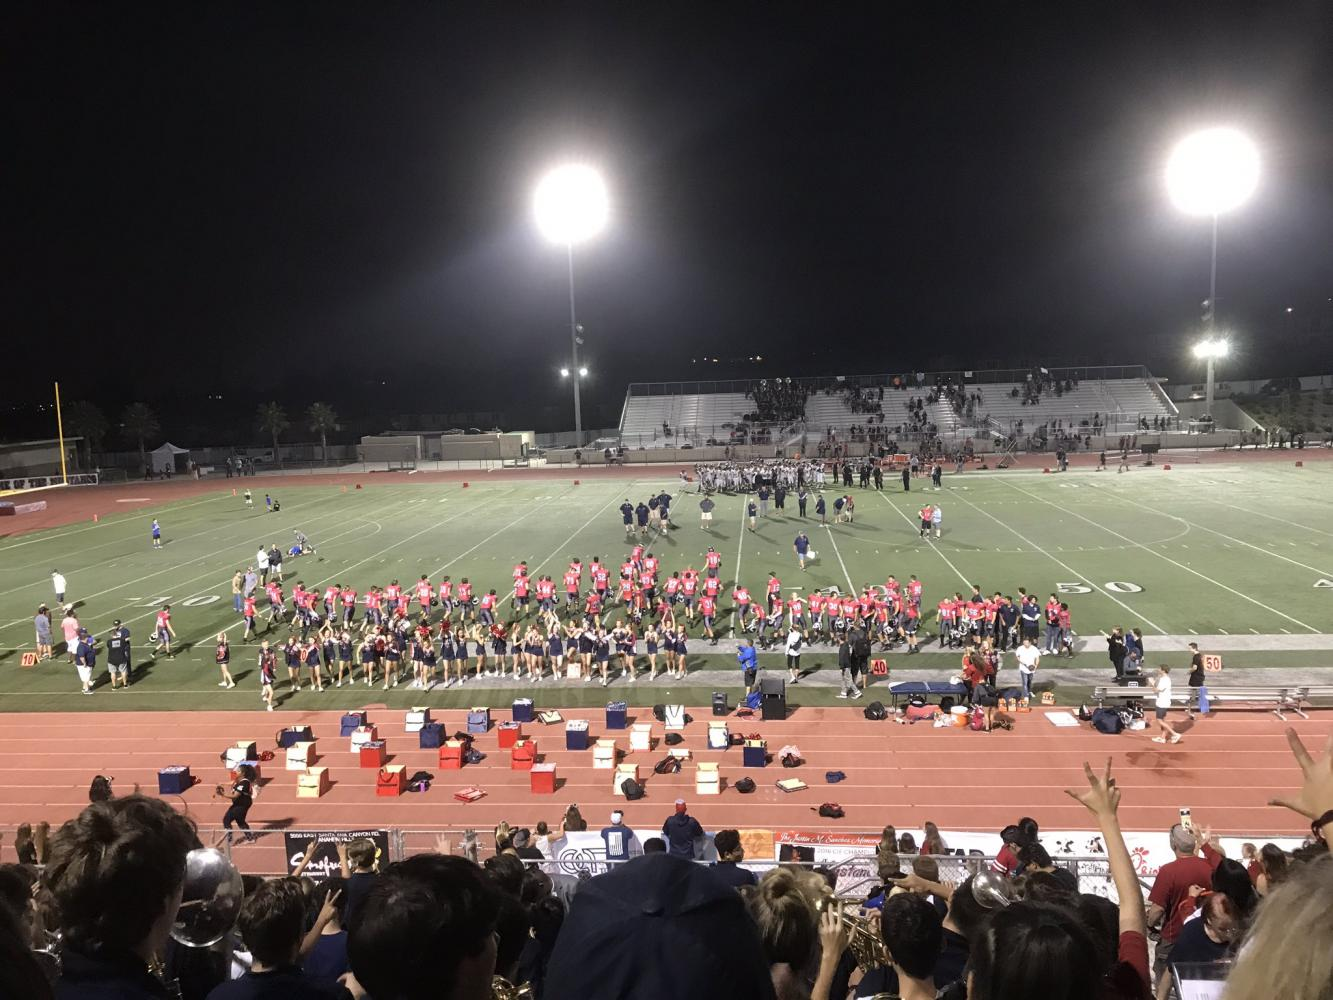 After the game, the Mustangs thank the crowd for supporting and cheering them on throughout the entirety of the game